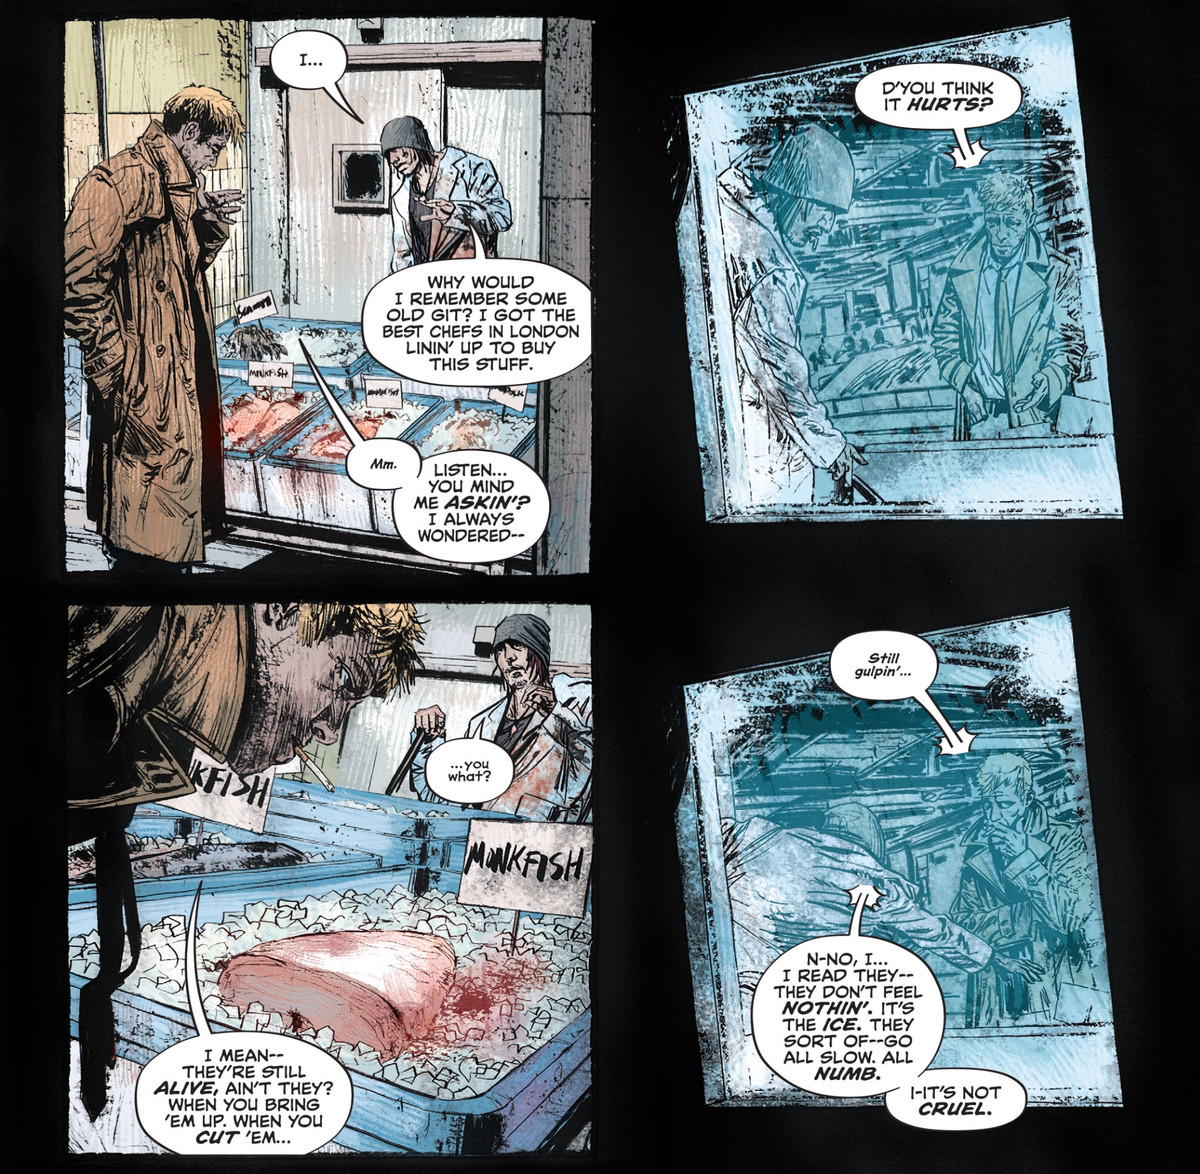 """""""D'you think it hurts?"""" John Constantine asks a London fishmonger about his filleted wares. """"I read they... they don't feel nothin',"""" the man responds. """"It's the ice. They sort of — go all slow. All numb."""" in John Constantine: Hellblazer #7, DC Comics (2020)."""